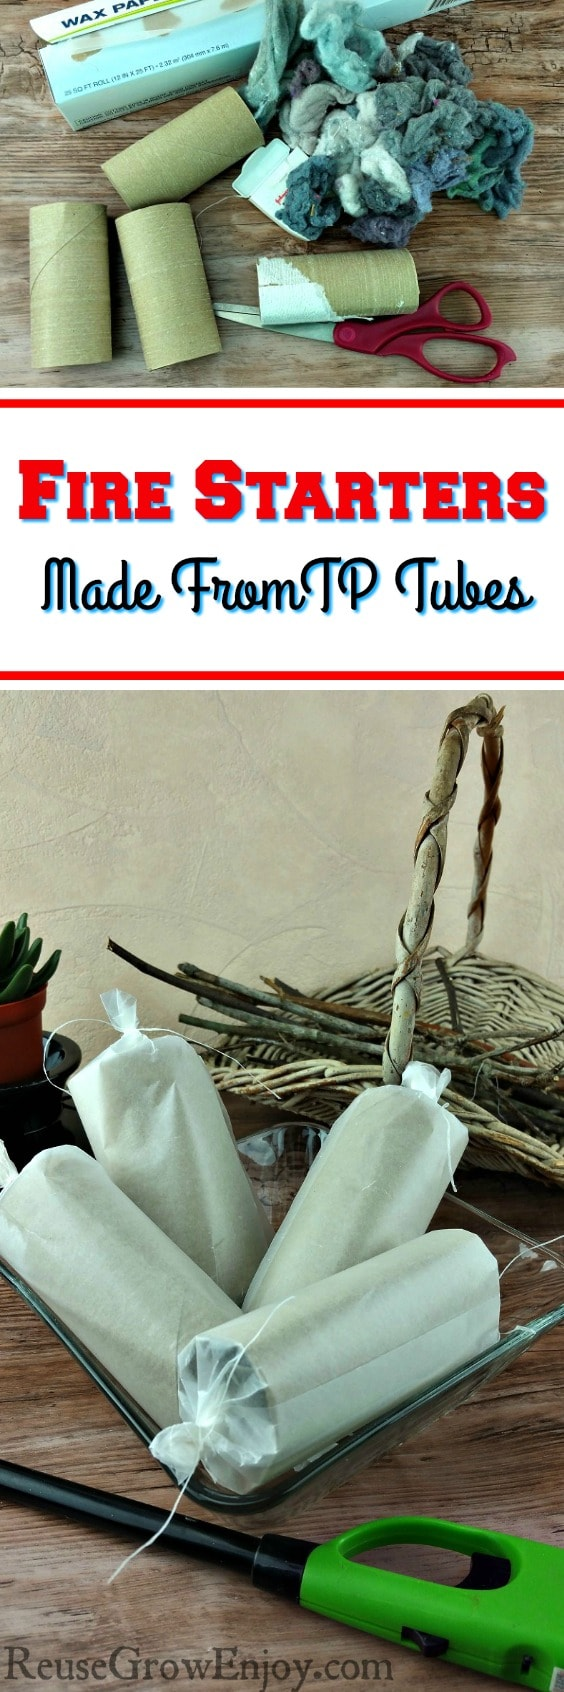 Going camping or have a fireplace? Then you may want to check out these DIY fire starter made from TP tubes.